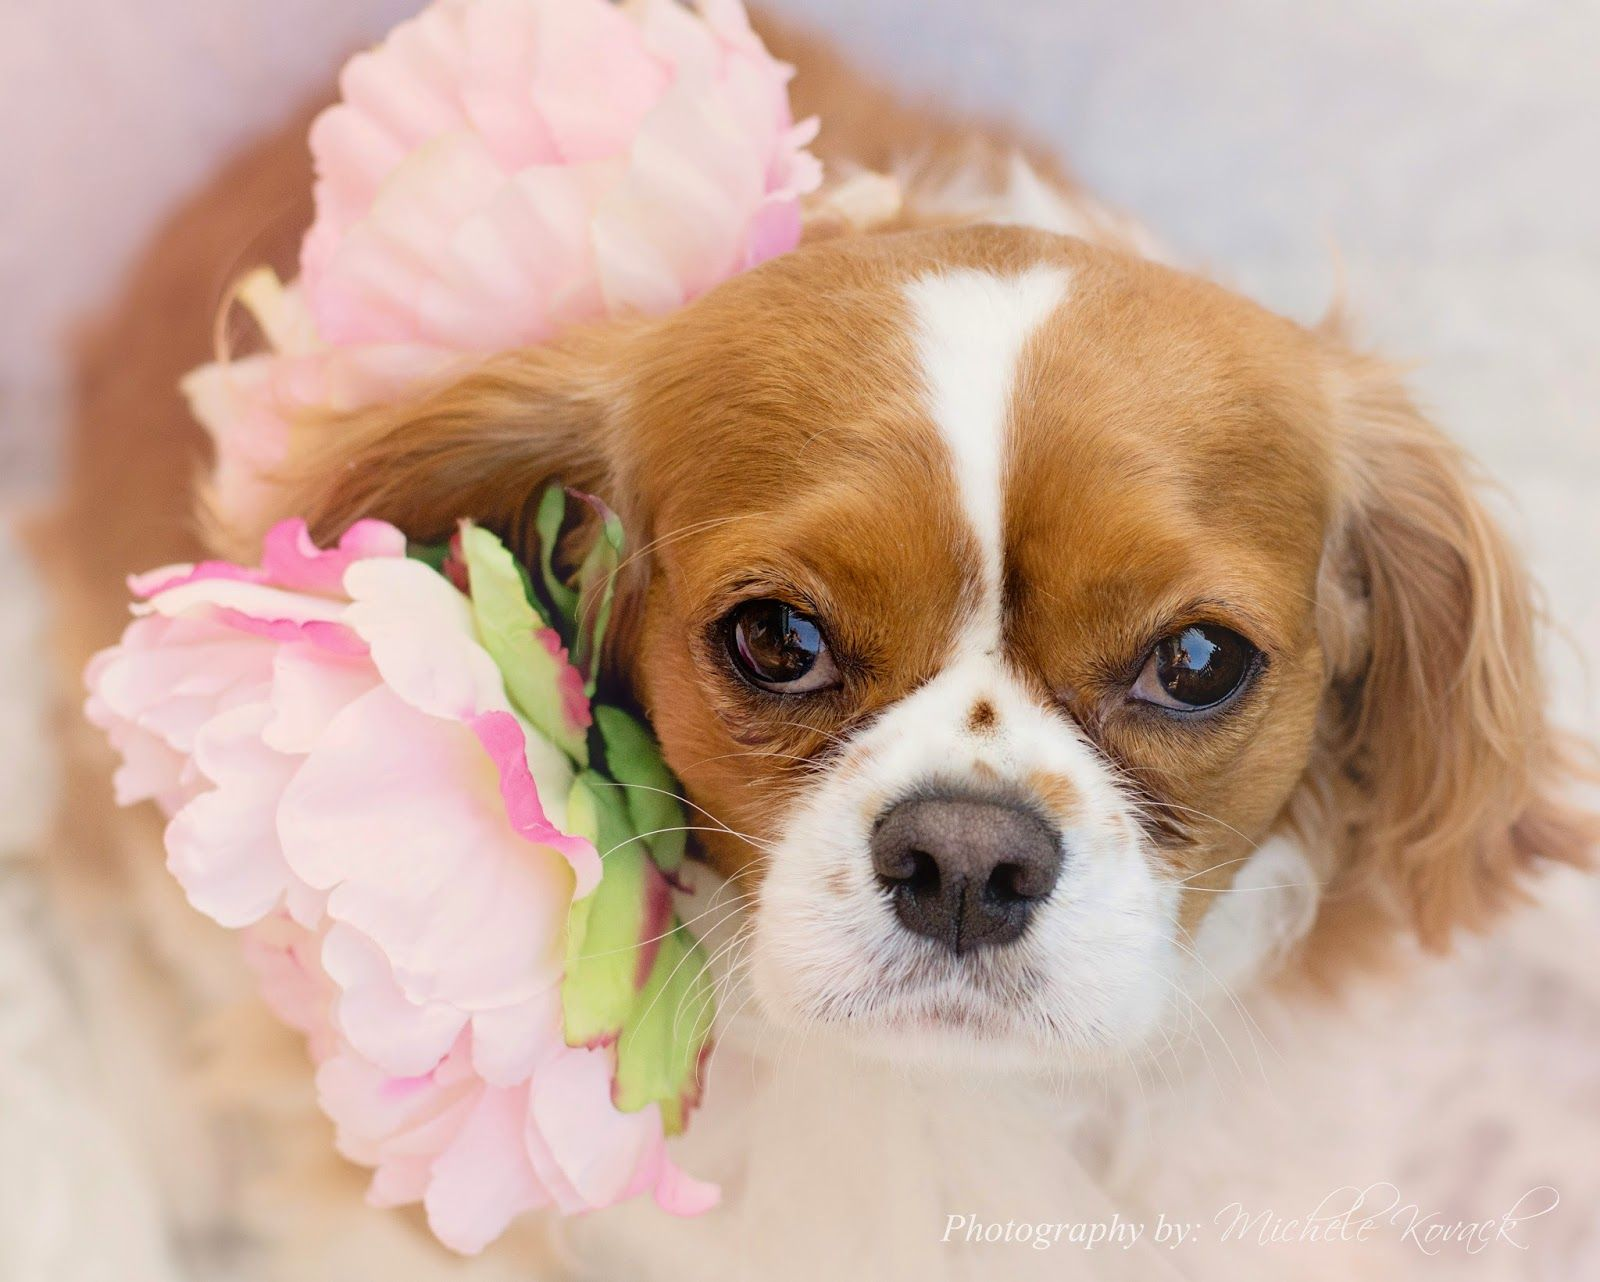 LOVE this picture! King Charles Cavalier Spaniel!! Photo by Michele Kovack!